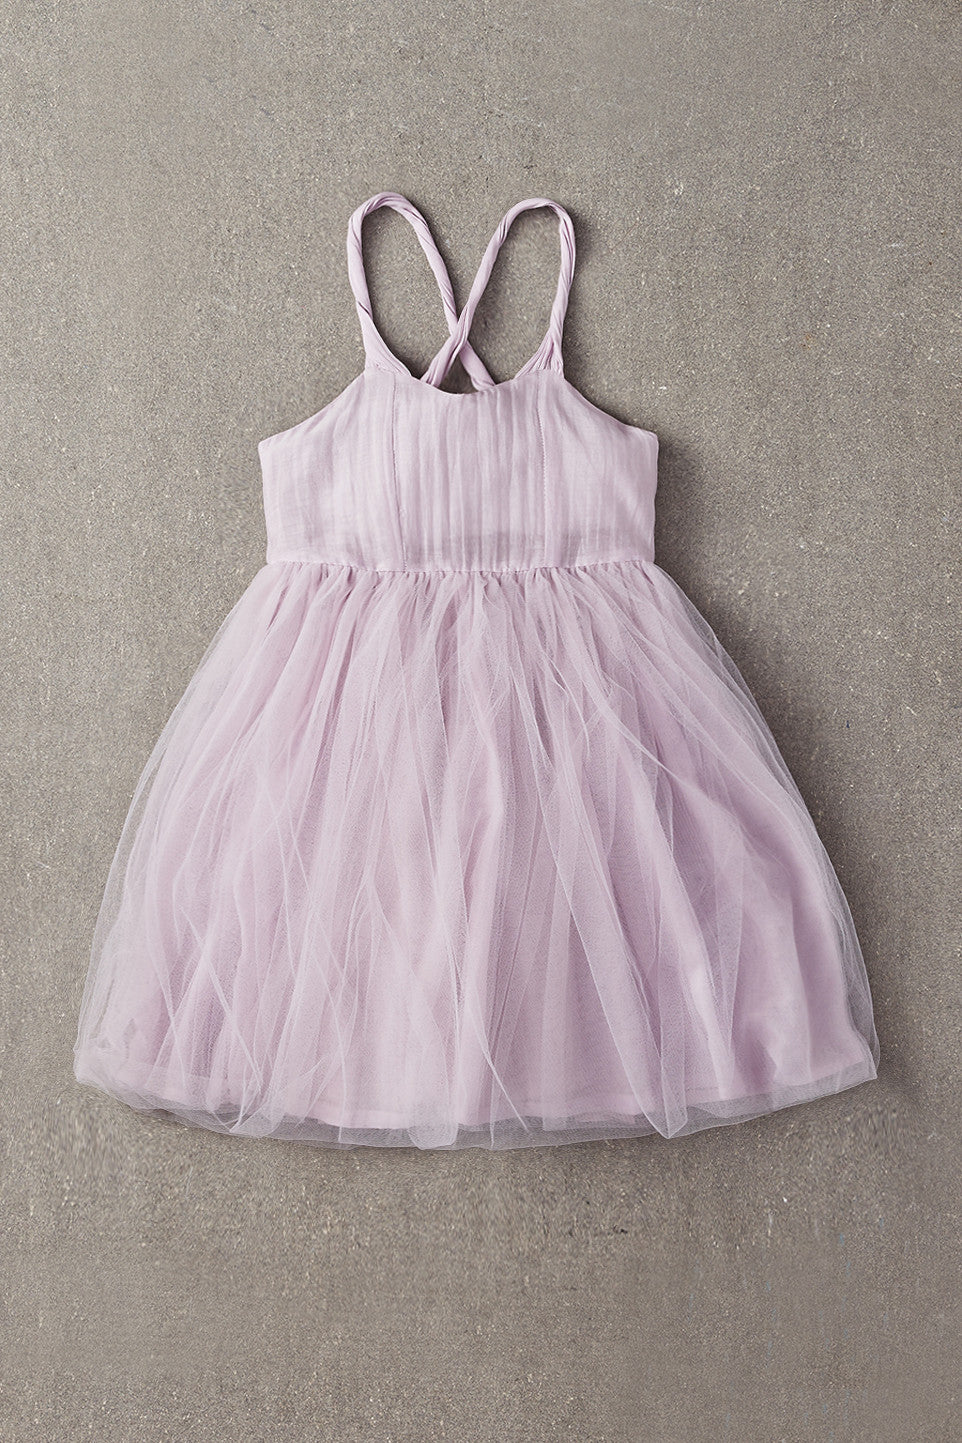 Nellystella Peach Dress - Lavender Fog